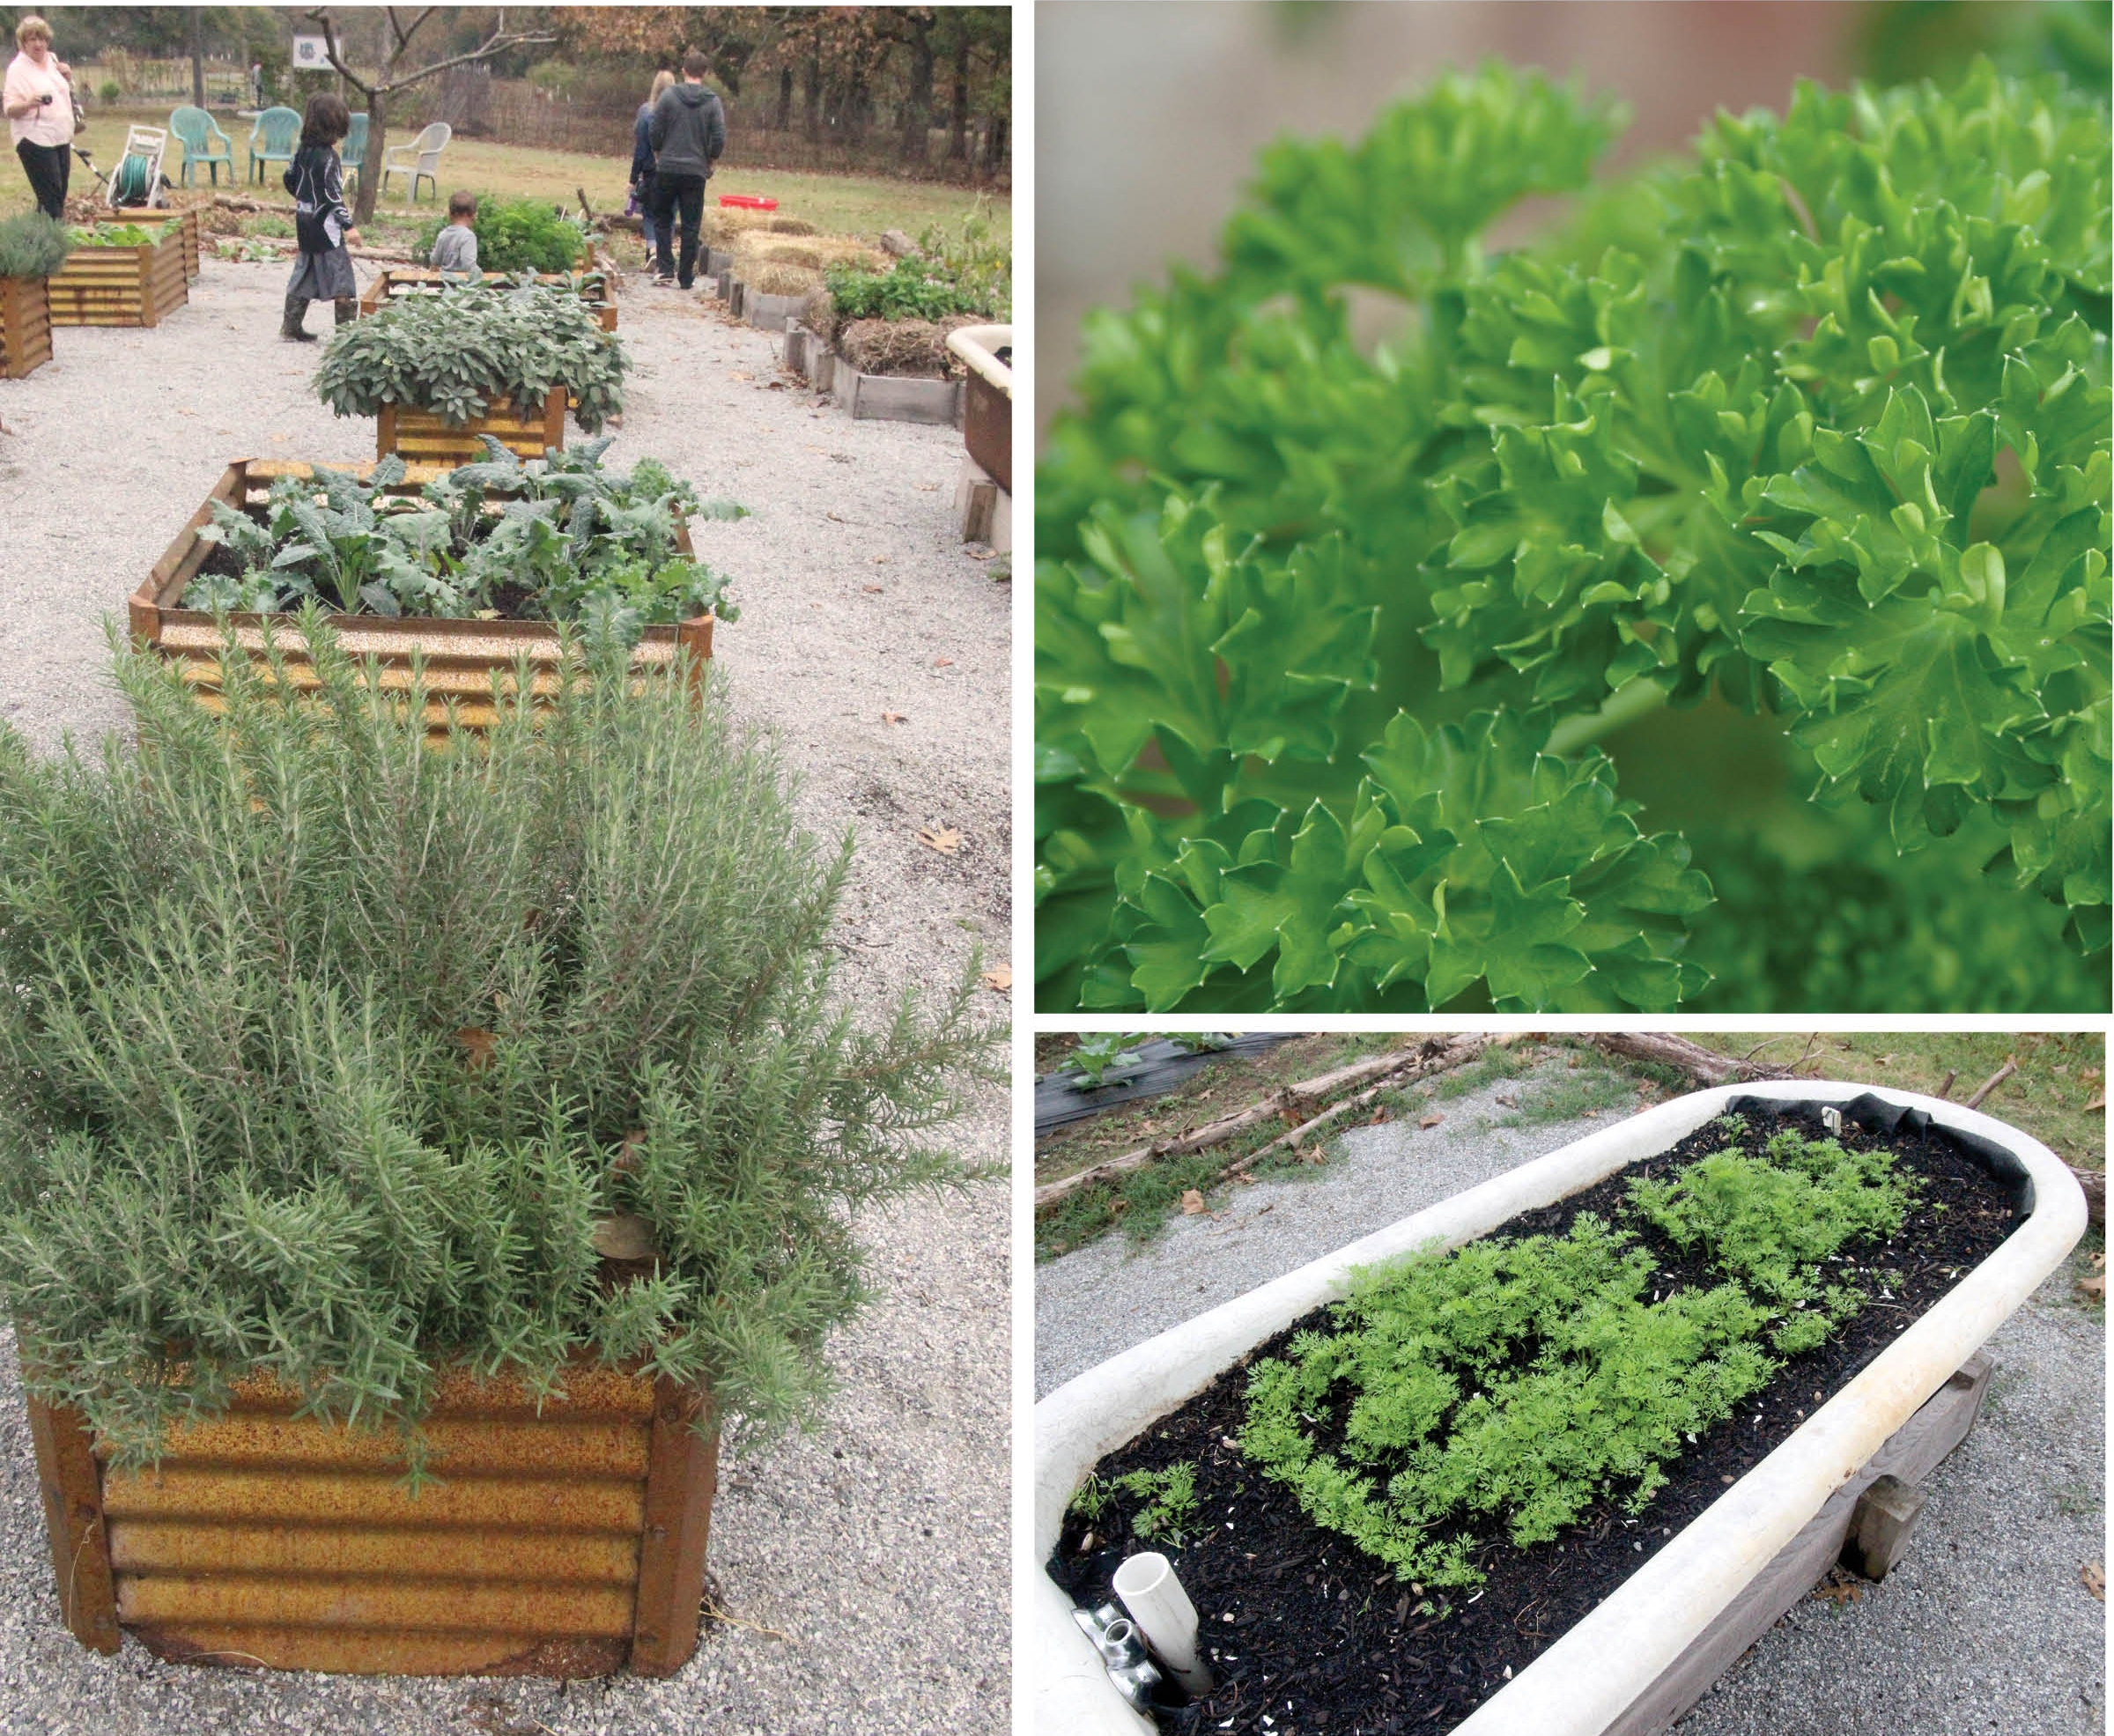 Clockwise from left: Let your herb garden reflect your personality and your needs, said herb specialist Debbie Tripp. This container is part of the herb garden at the St. Joseph Center in North Little Rock. The rosemary, pictured in the foreground, thrives in Central Arkansas and is winter hardy. Fresh parsley is a tasty addition to pasta and is easily dried for winter use. It grows well in Arkansas in pots or in the ground. Even an old bathtub with proper drainage makes an interesting and fun herb container. It's also part of the  St. Joseph Center's garden.